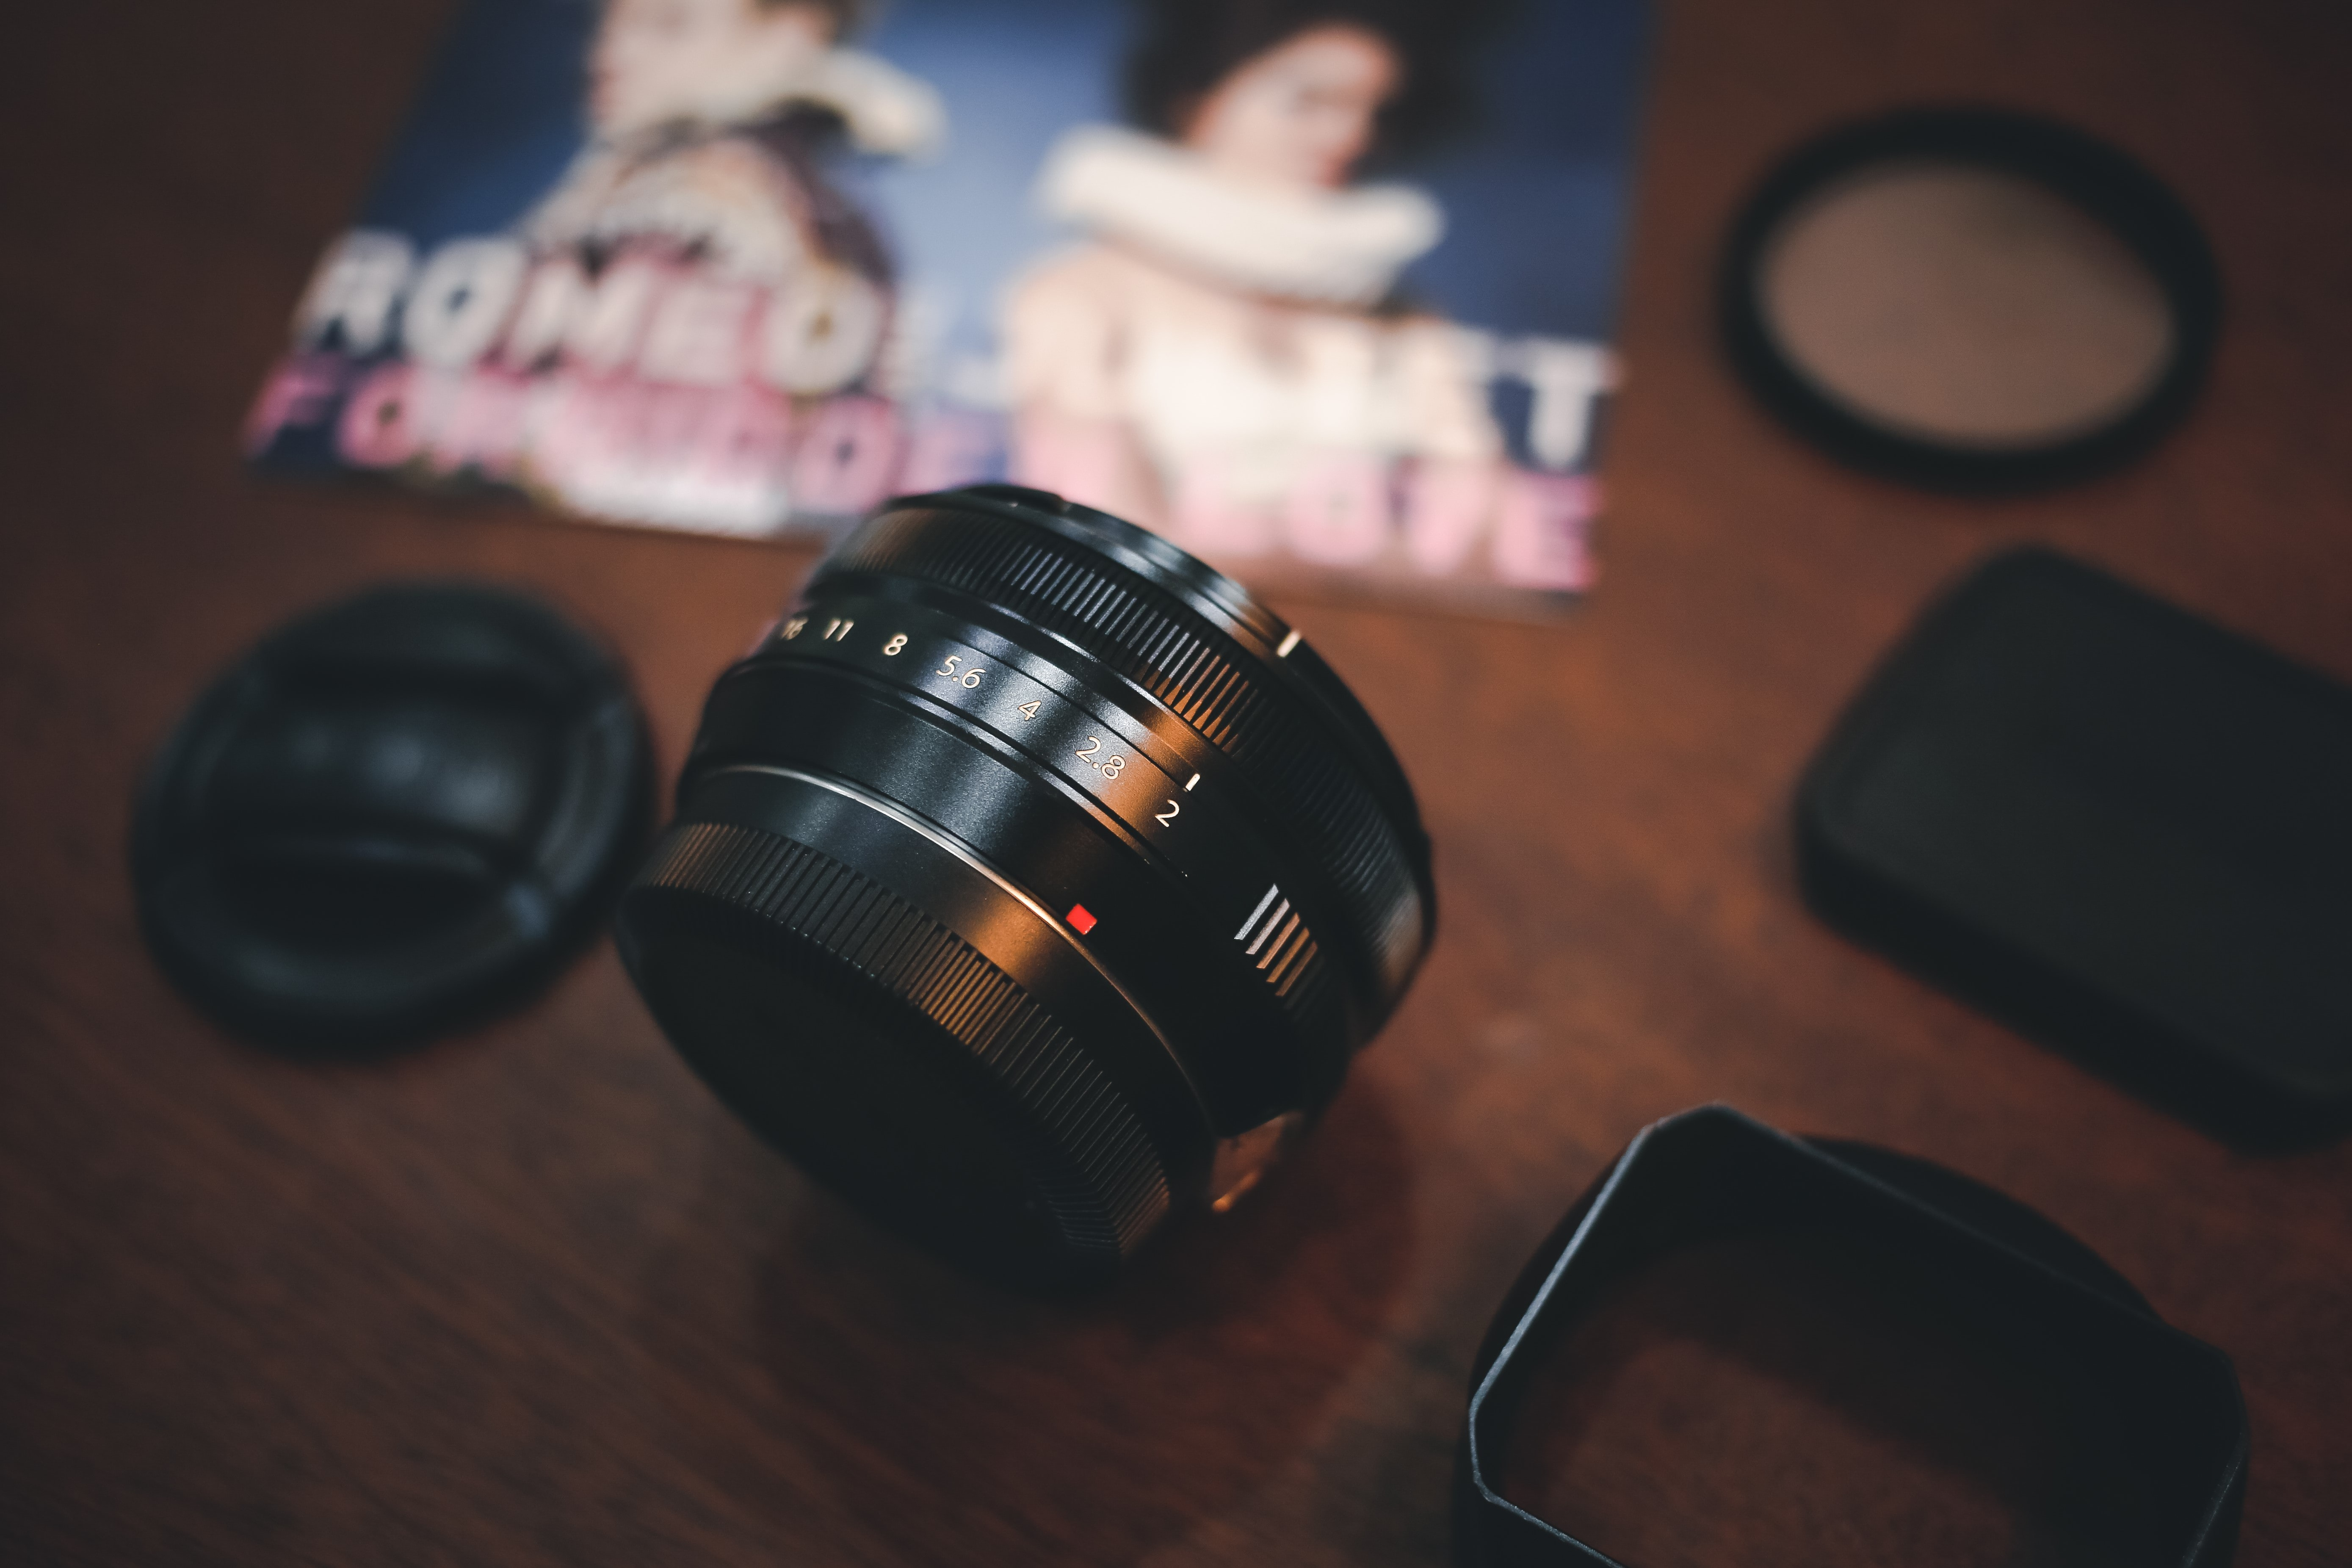 A macro of a DSLR camera lens beside a romeo and juliet print and various covers.